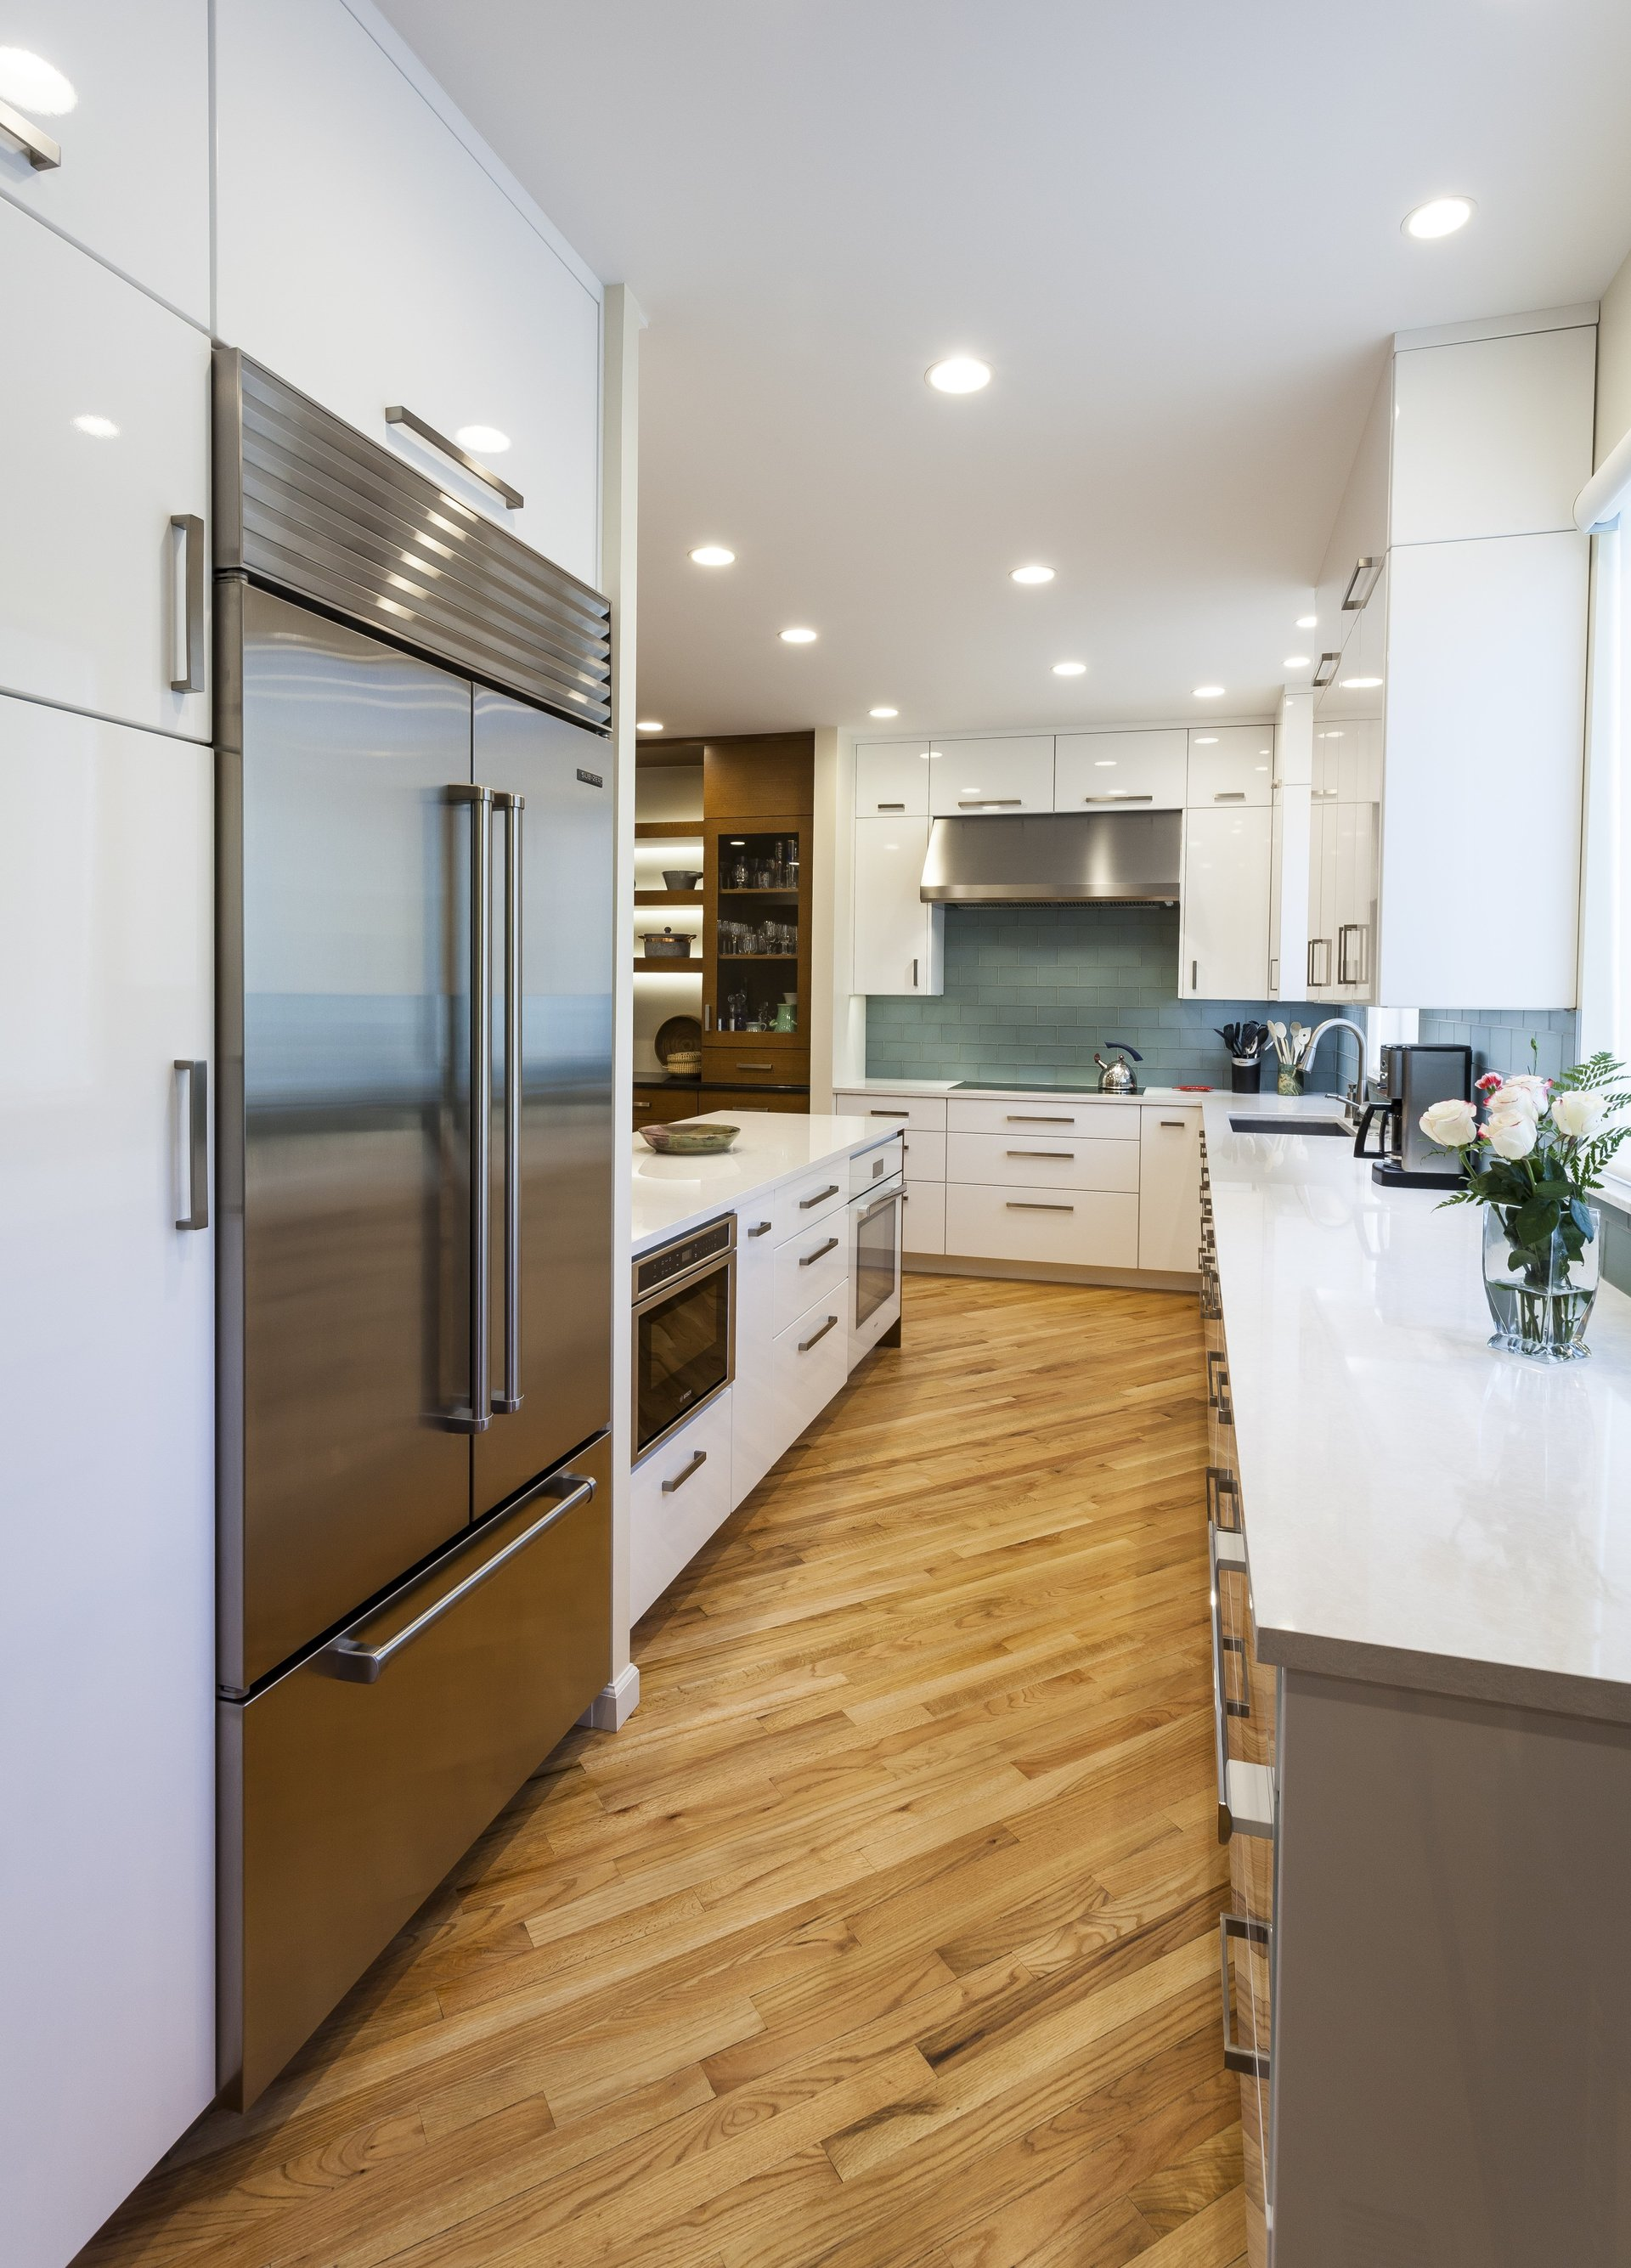 Laminate Countertops Pittsburgh Jacob Evans Kitchen Design And Remodeling Pittsburgh Pa